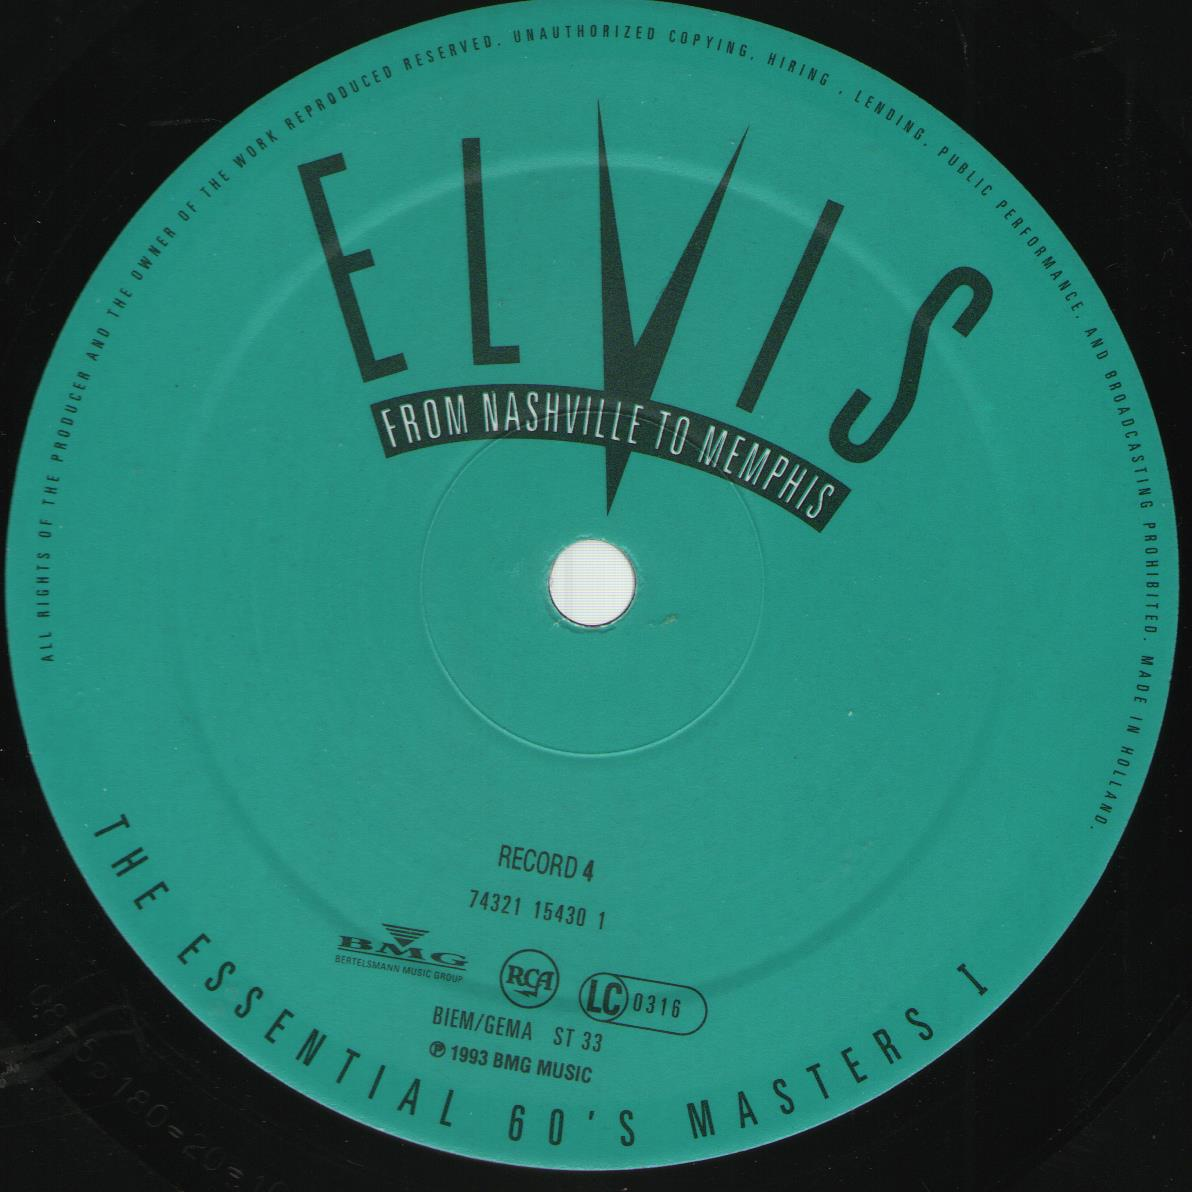 ELVIS - FROM NASHVILLE TO MEMPHIS - THE ESSENTIAL 60'S MASTERS Bild73ys8n